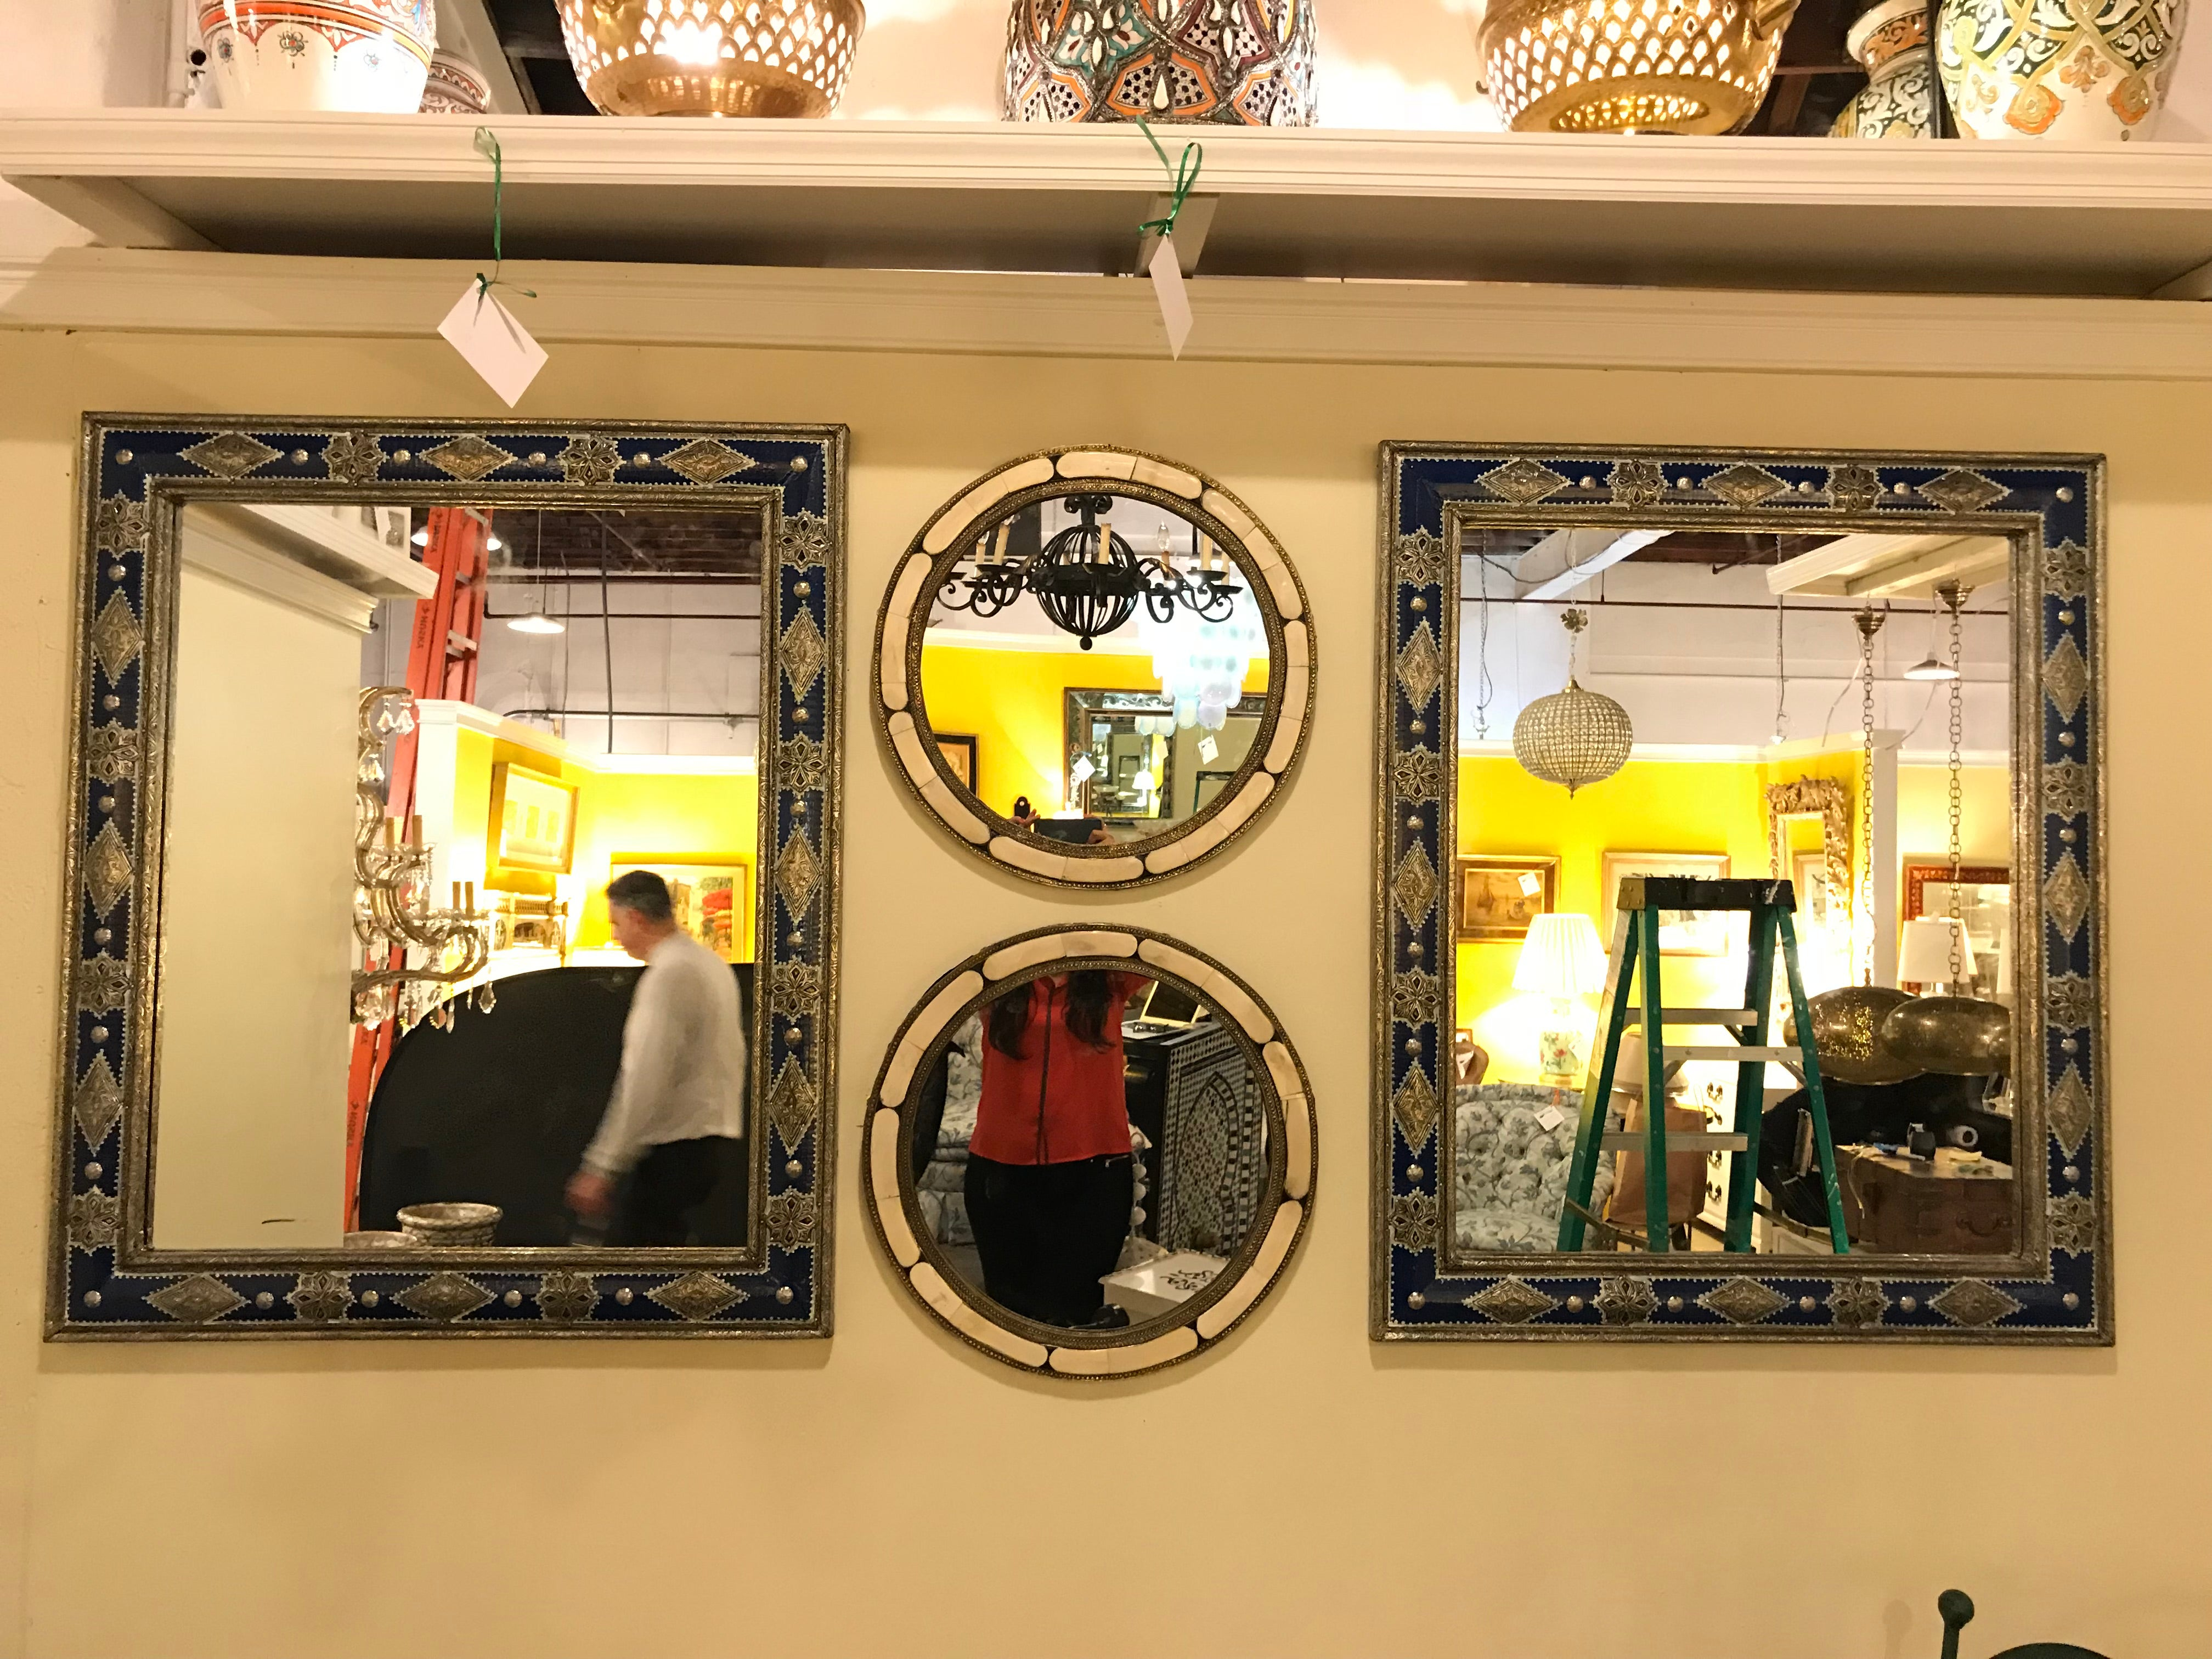 Large Pair of Moroccan Moorish Style Blue Mirrors For Sale at 1stdibs